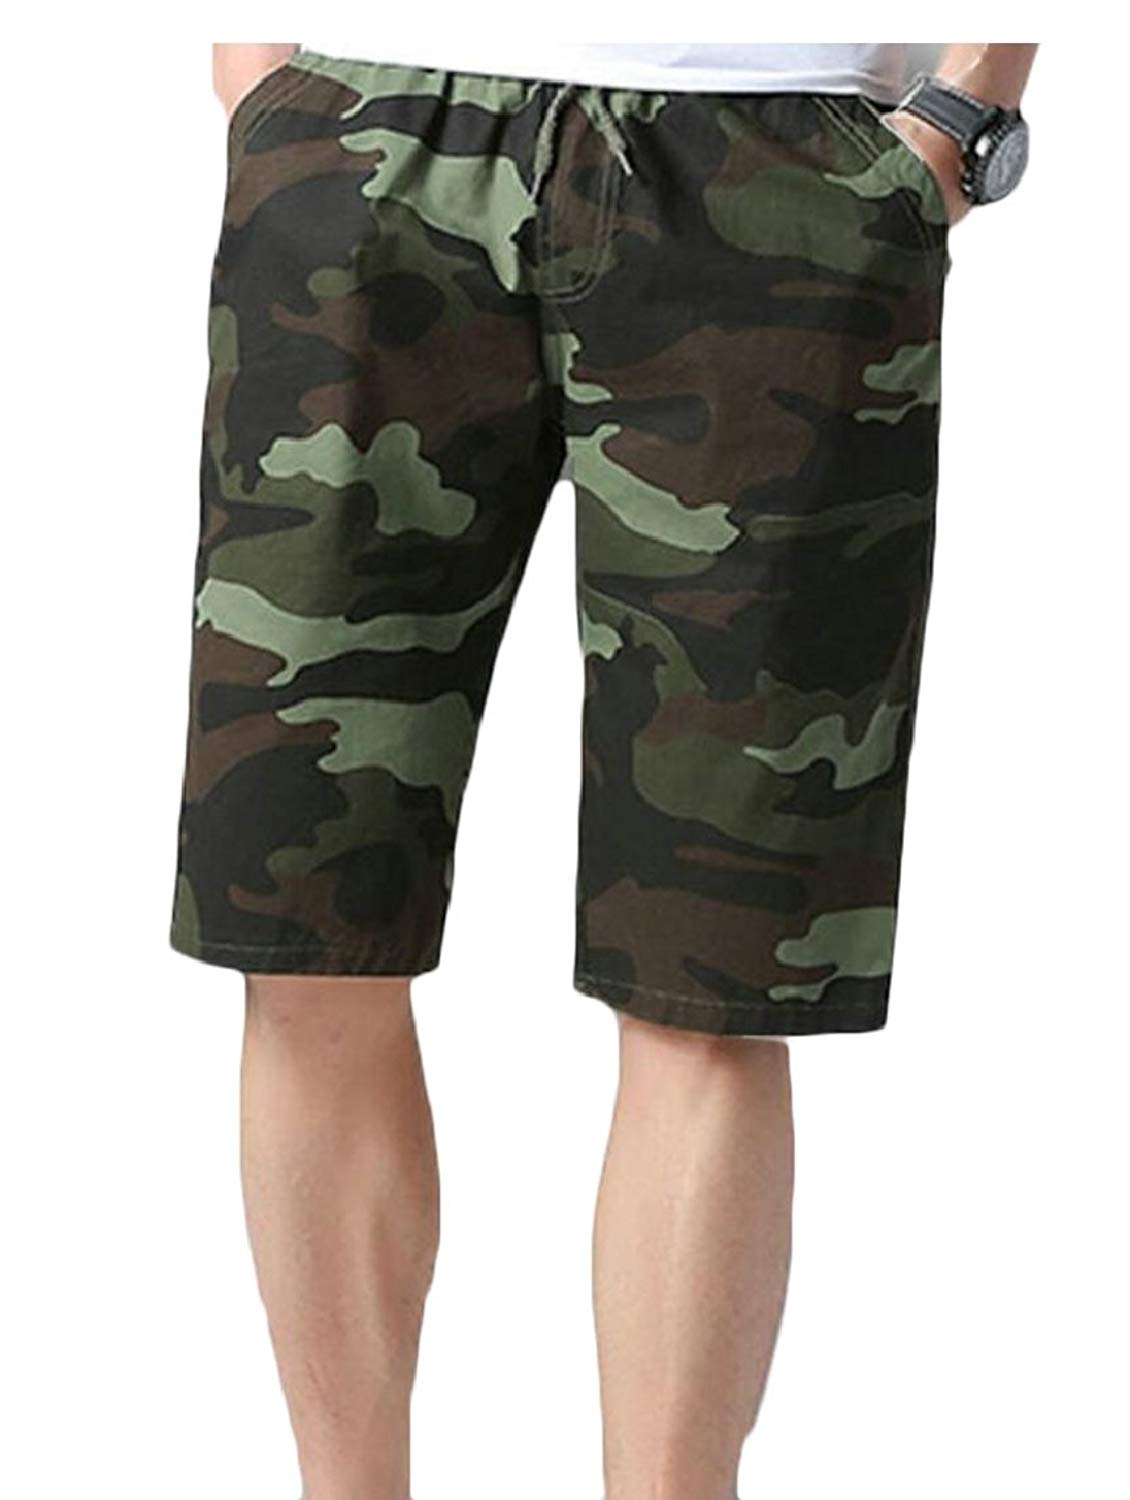 WSPLYSPJY Mens Camouflage Printing Elastic Waist Beach Board Shorts Swim Trunks